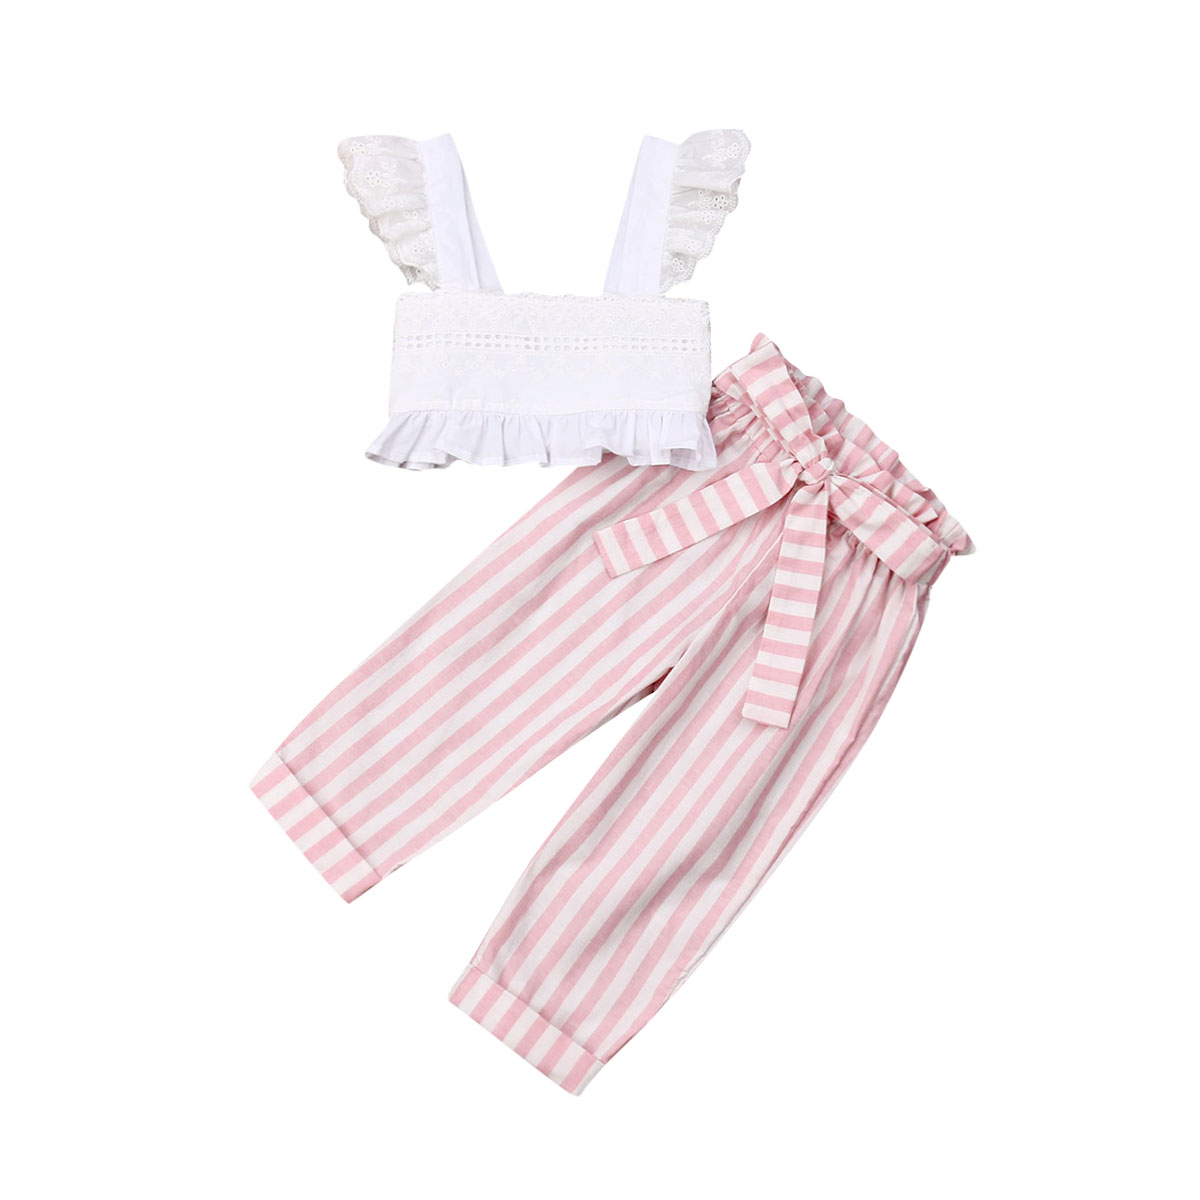 2pcs/set Toddler Kid Girls Clothing Set Summer Whtie Ruffles Vest T Shirts + Striped Pants Outfits Kid Girls Costumes